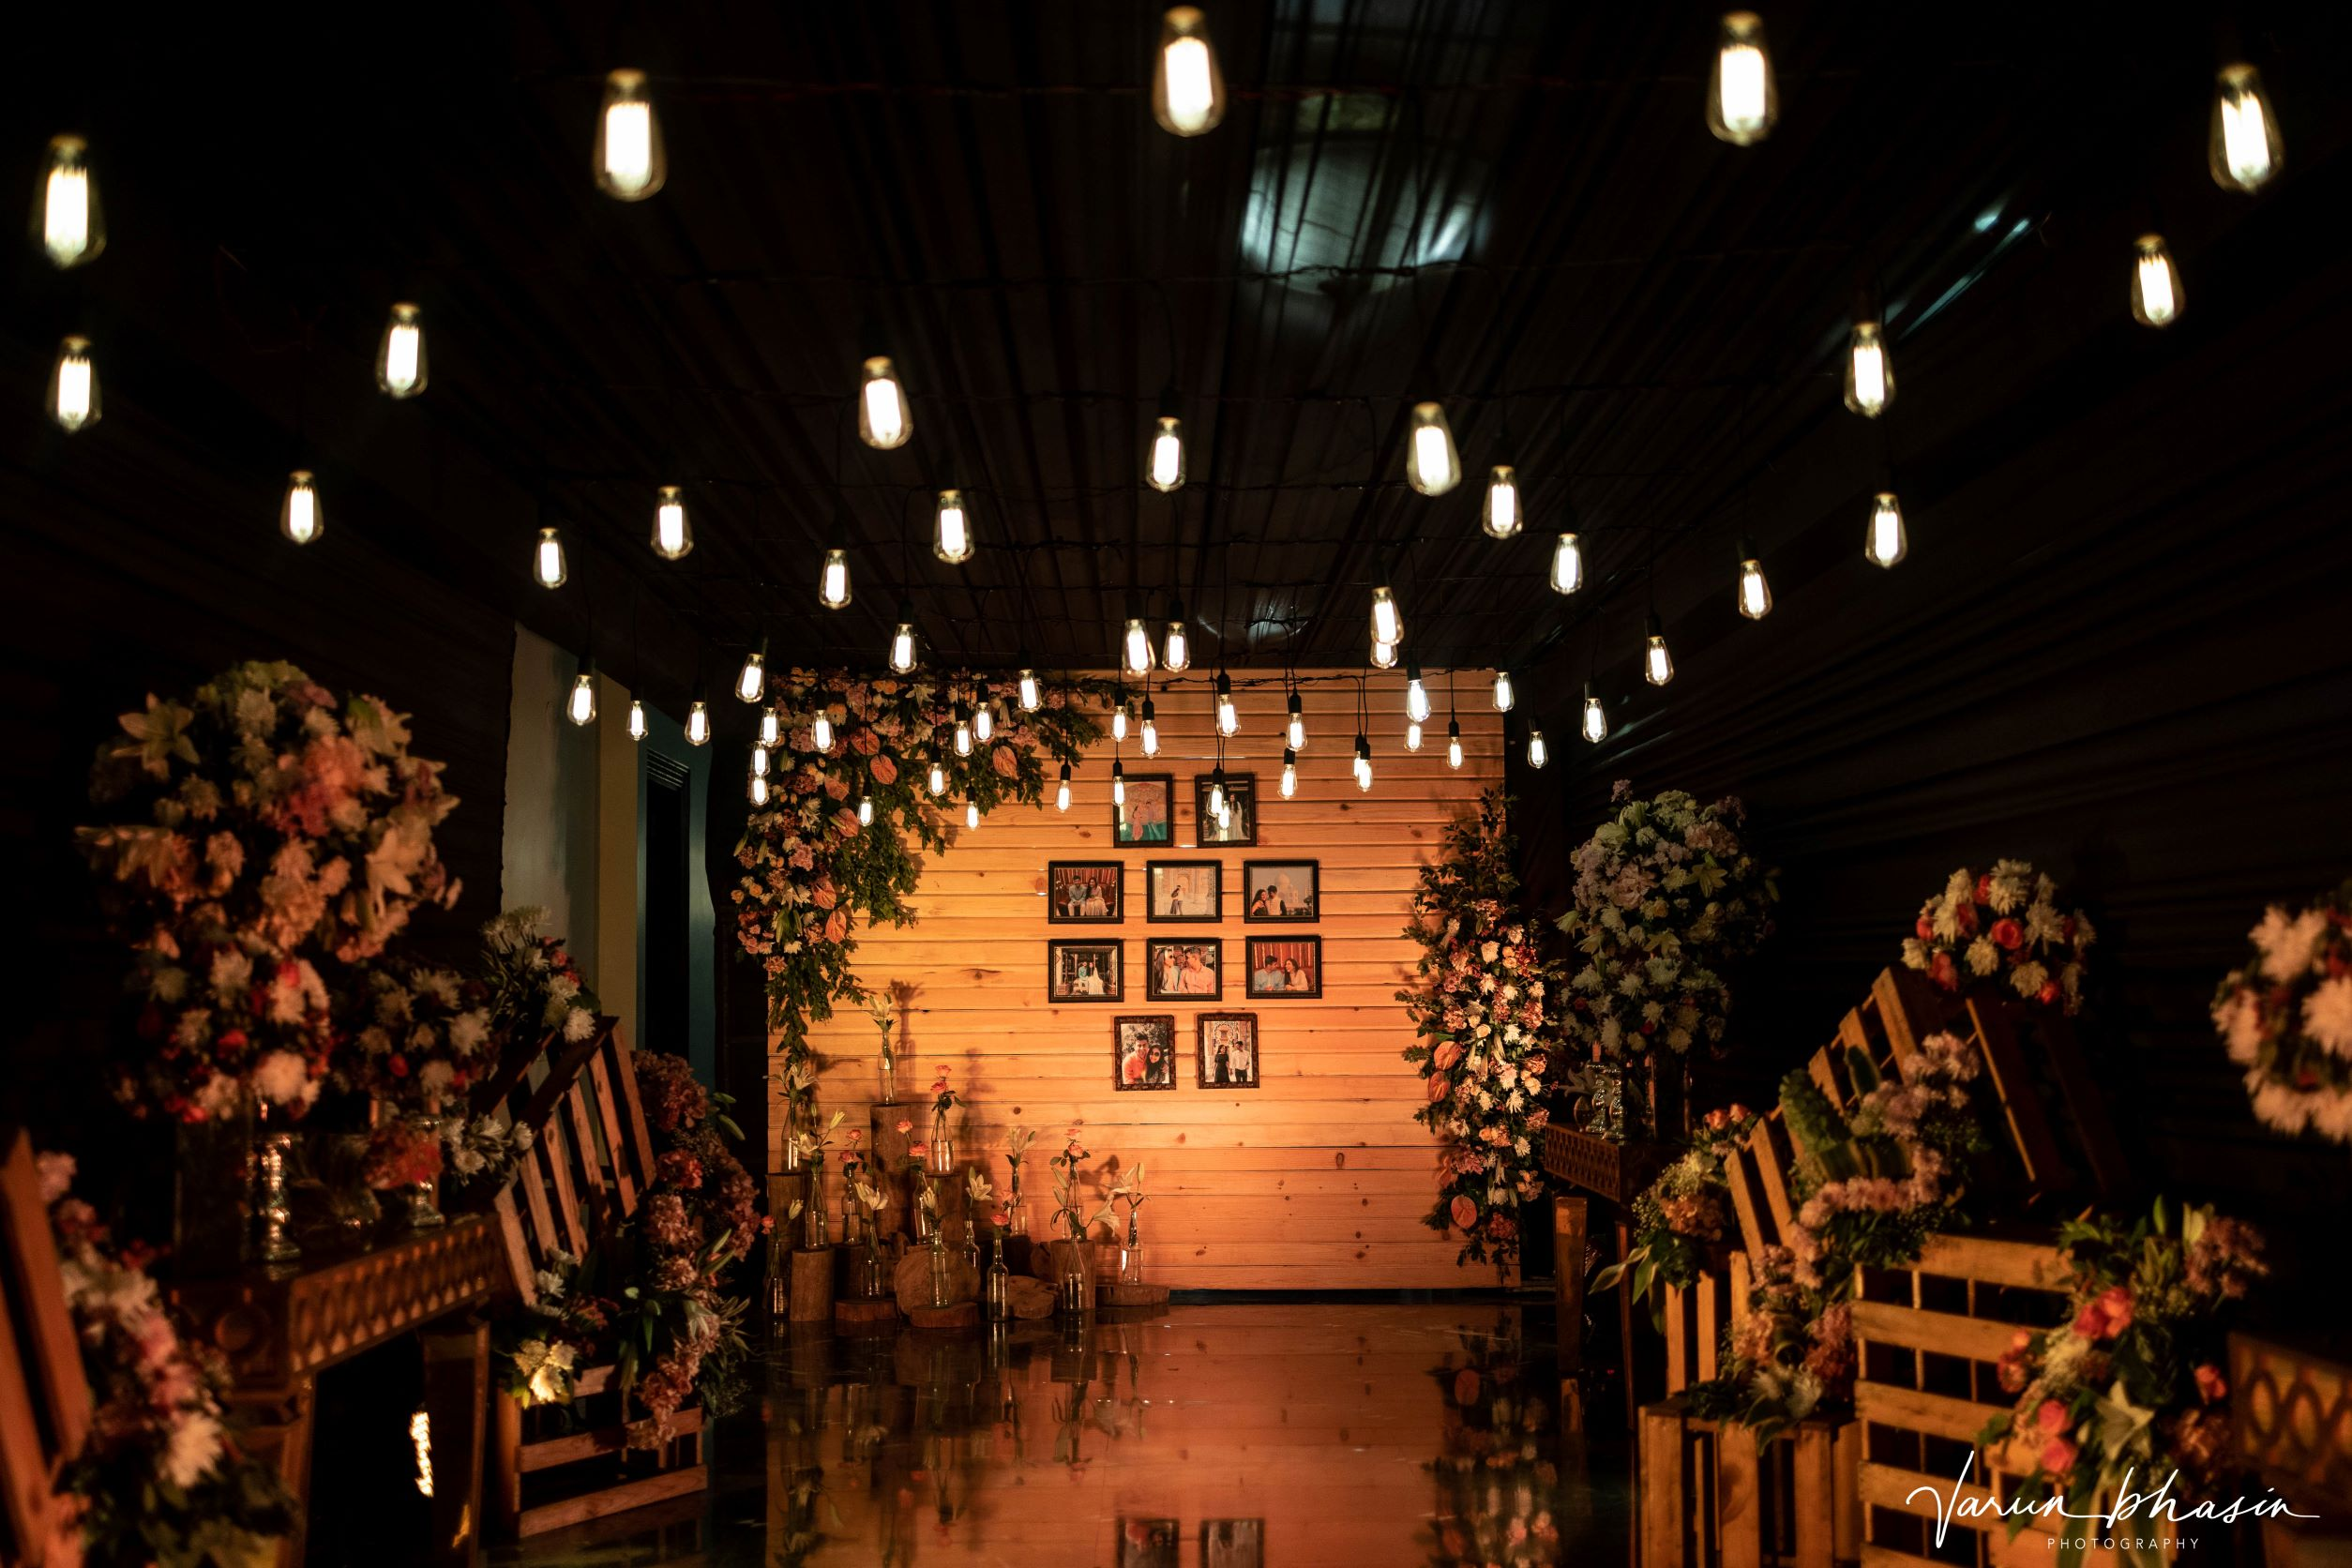 photowall decorated with lights